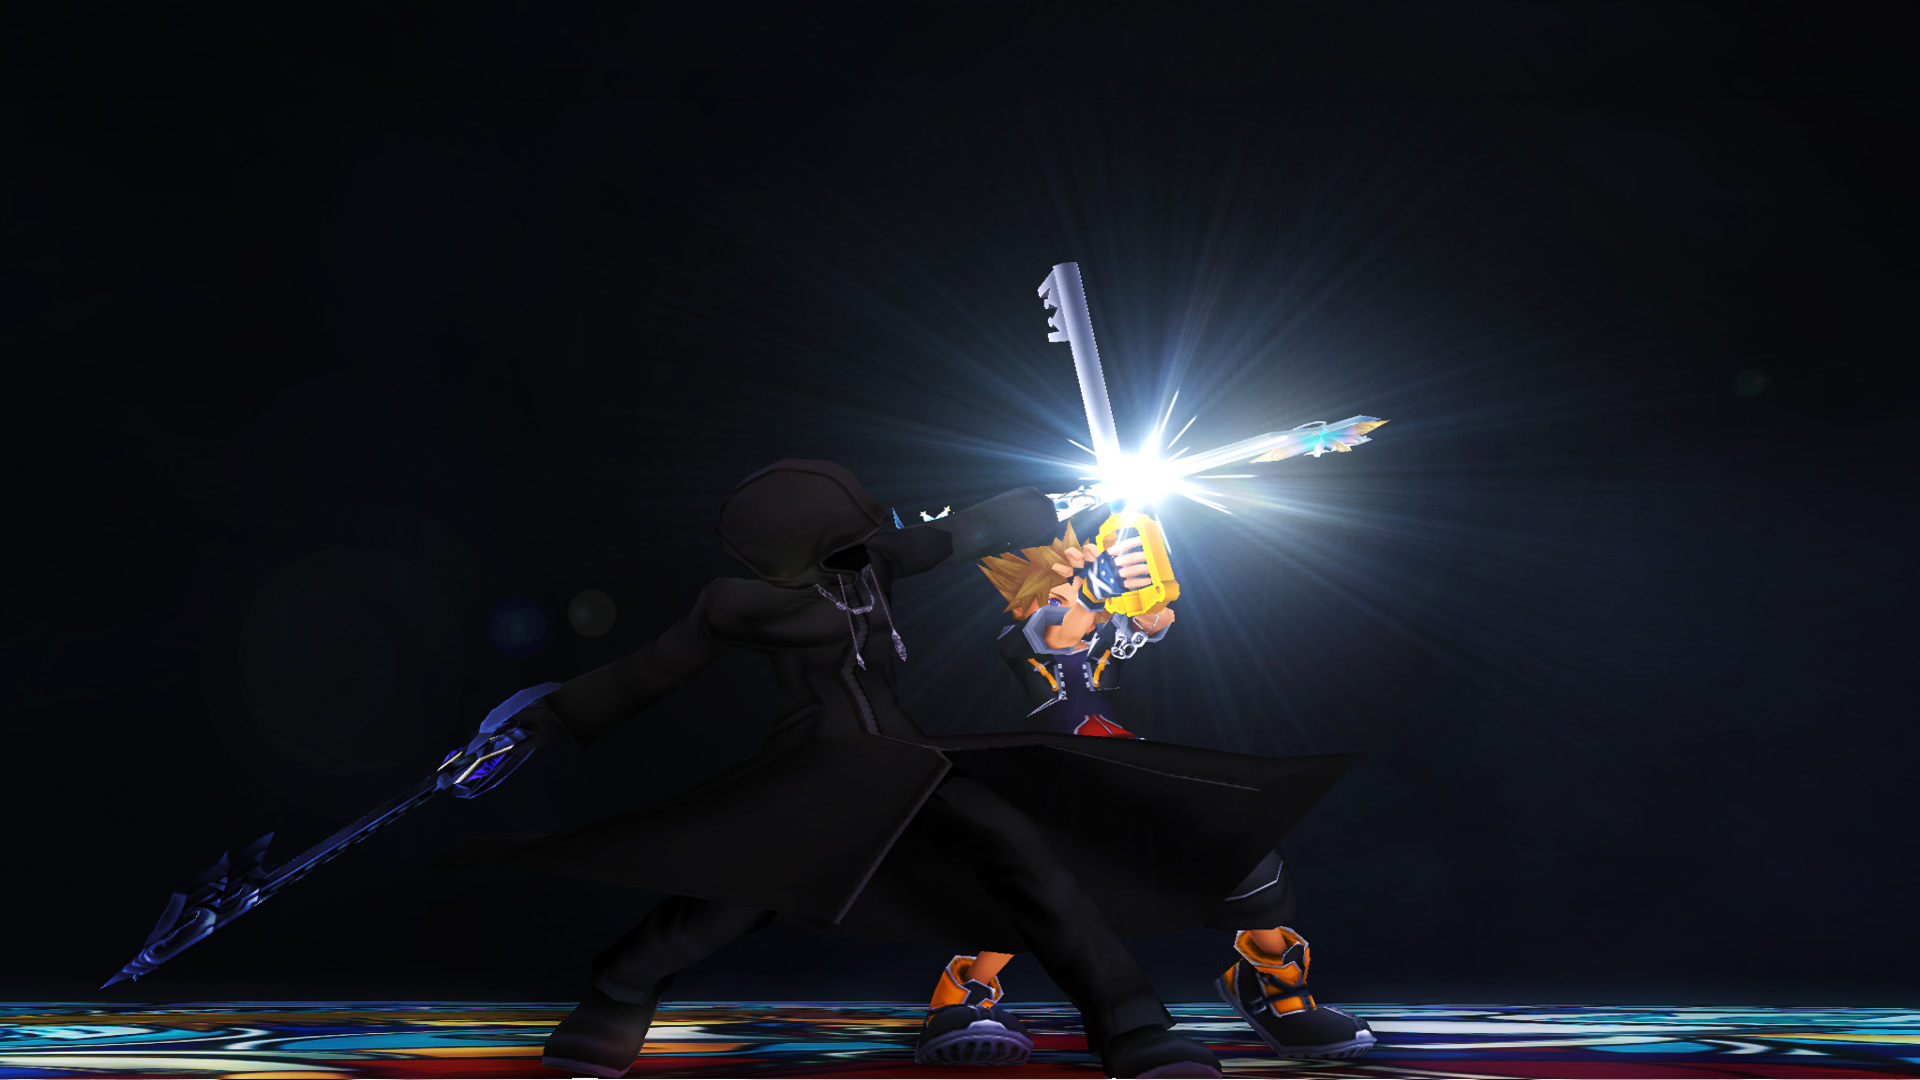 kingdom hearts background - photo #15